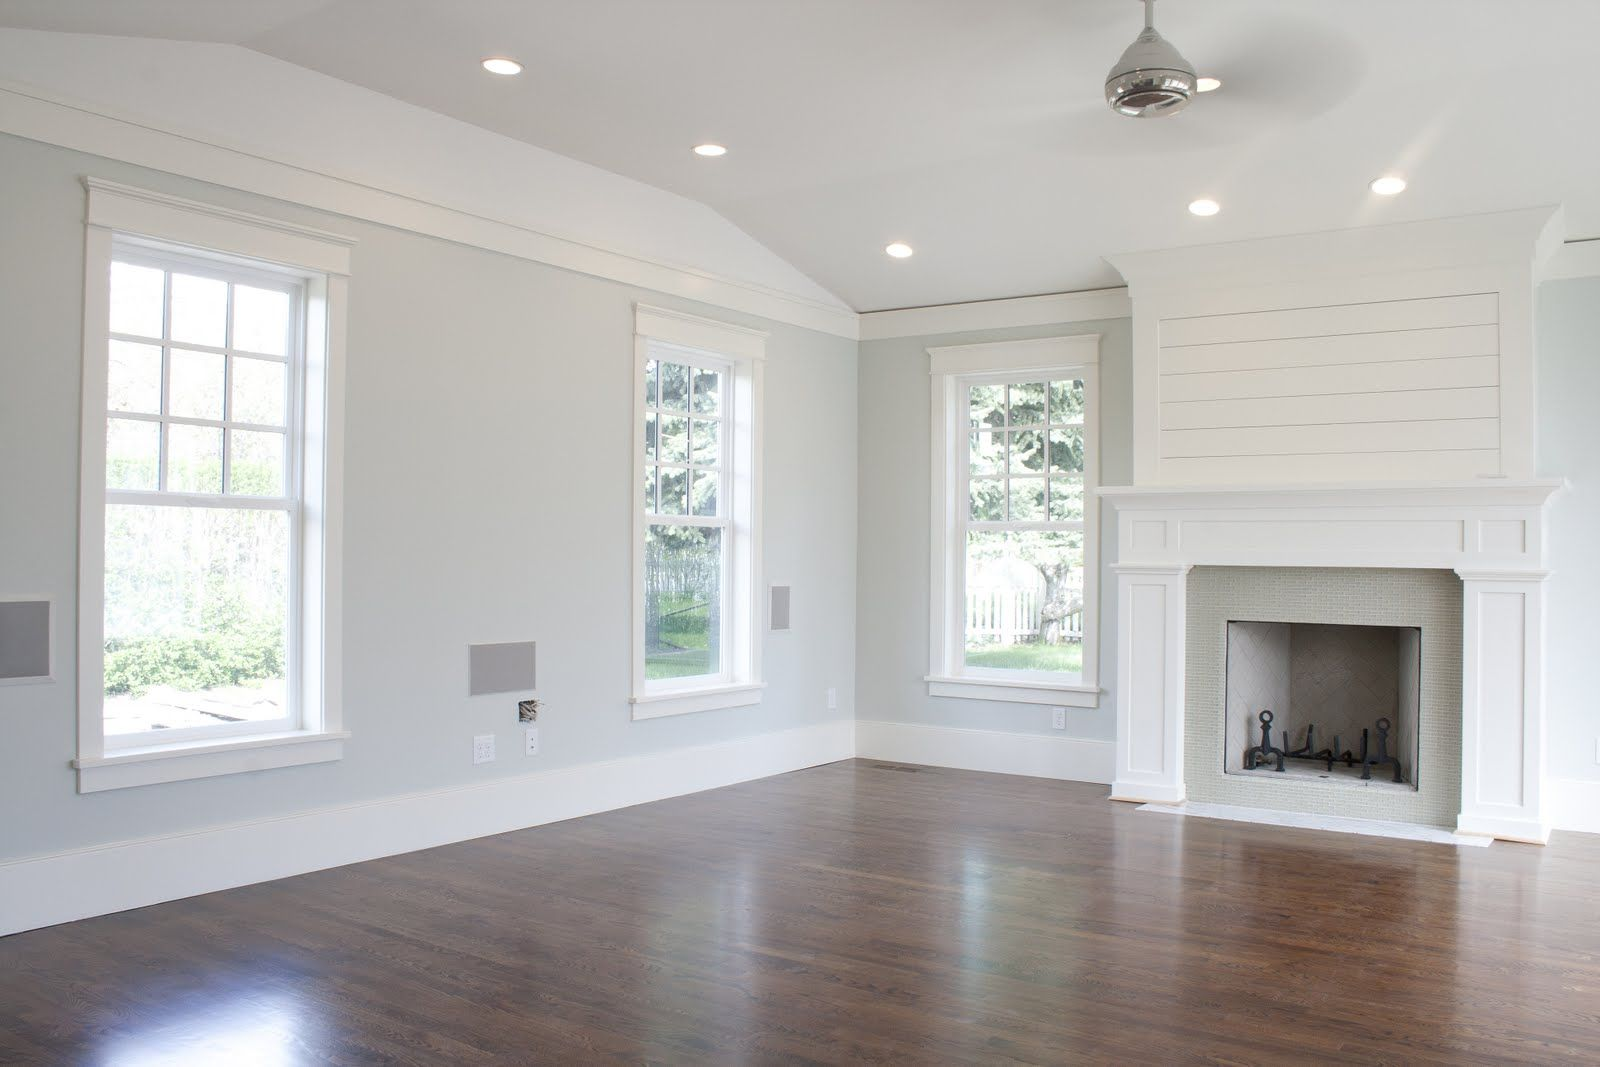 Light Grey Living Room Walls Pale Gray With White Trim And Dark Floors Home Light